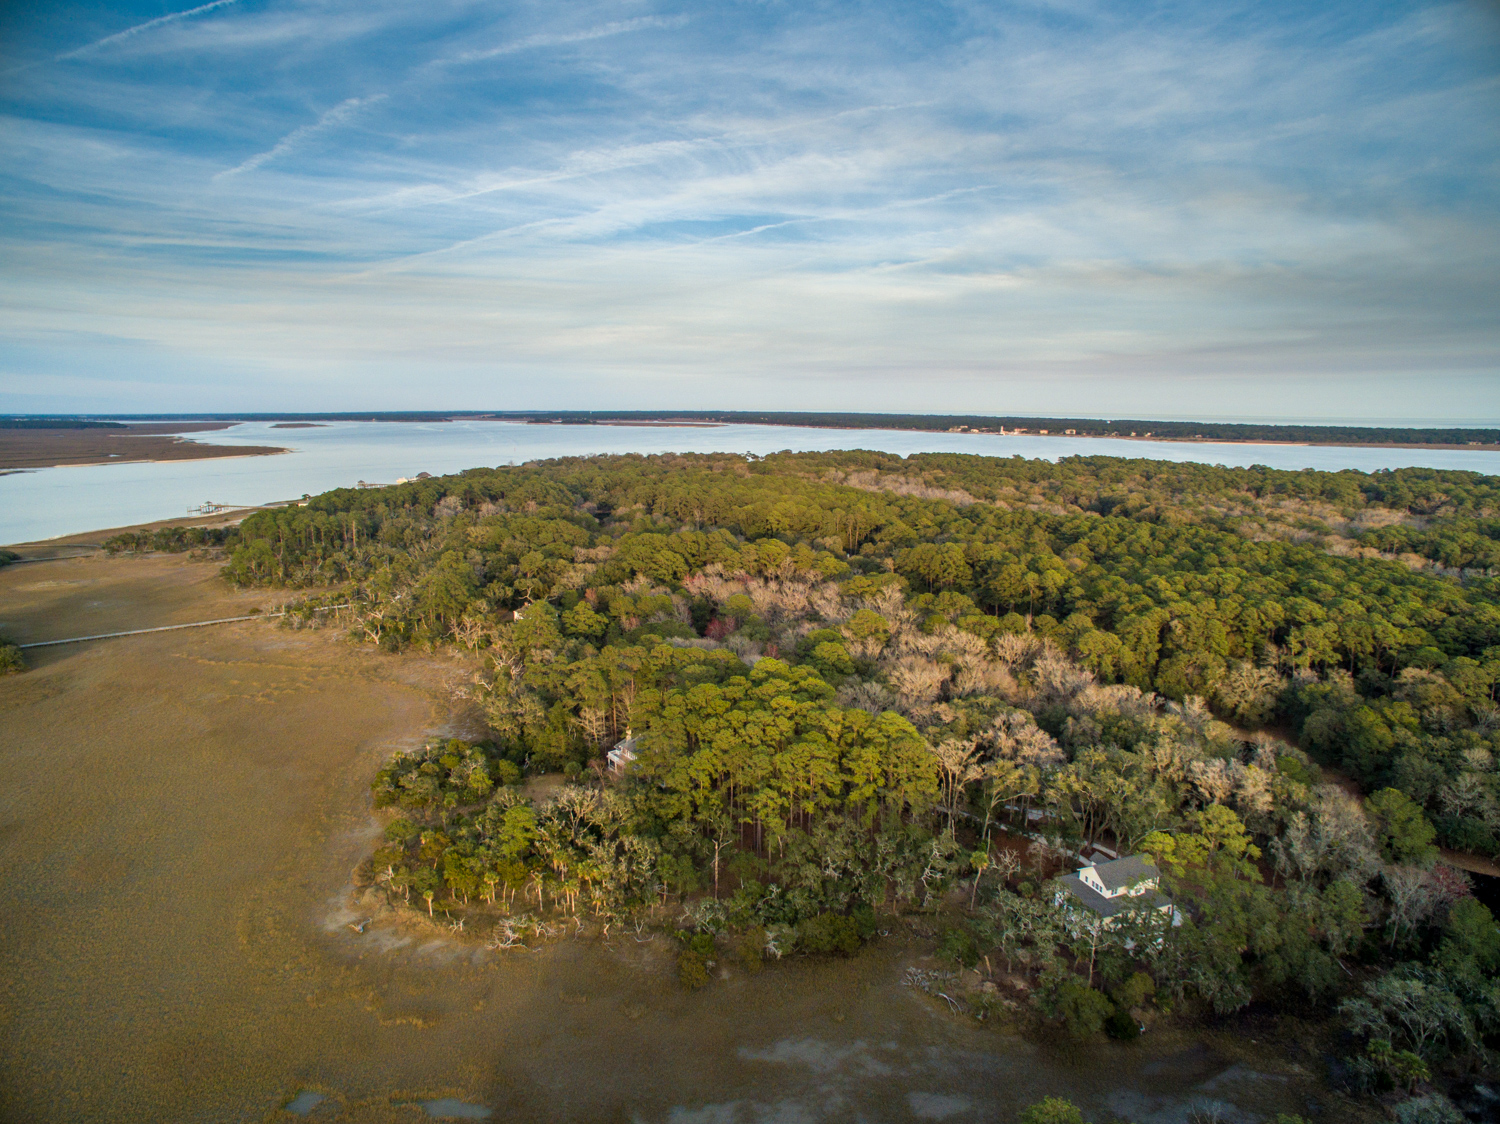 lot30-view-to-intracoastal.jpg